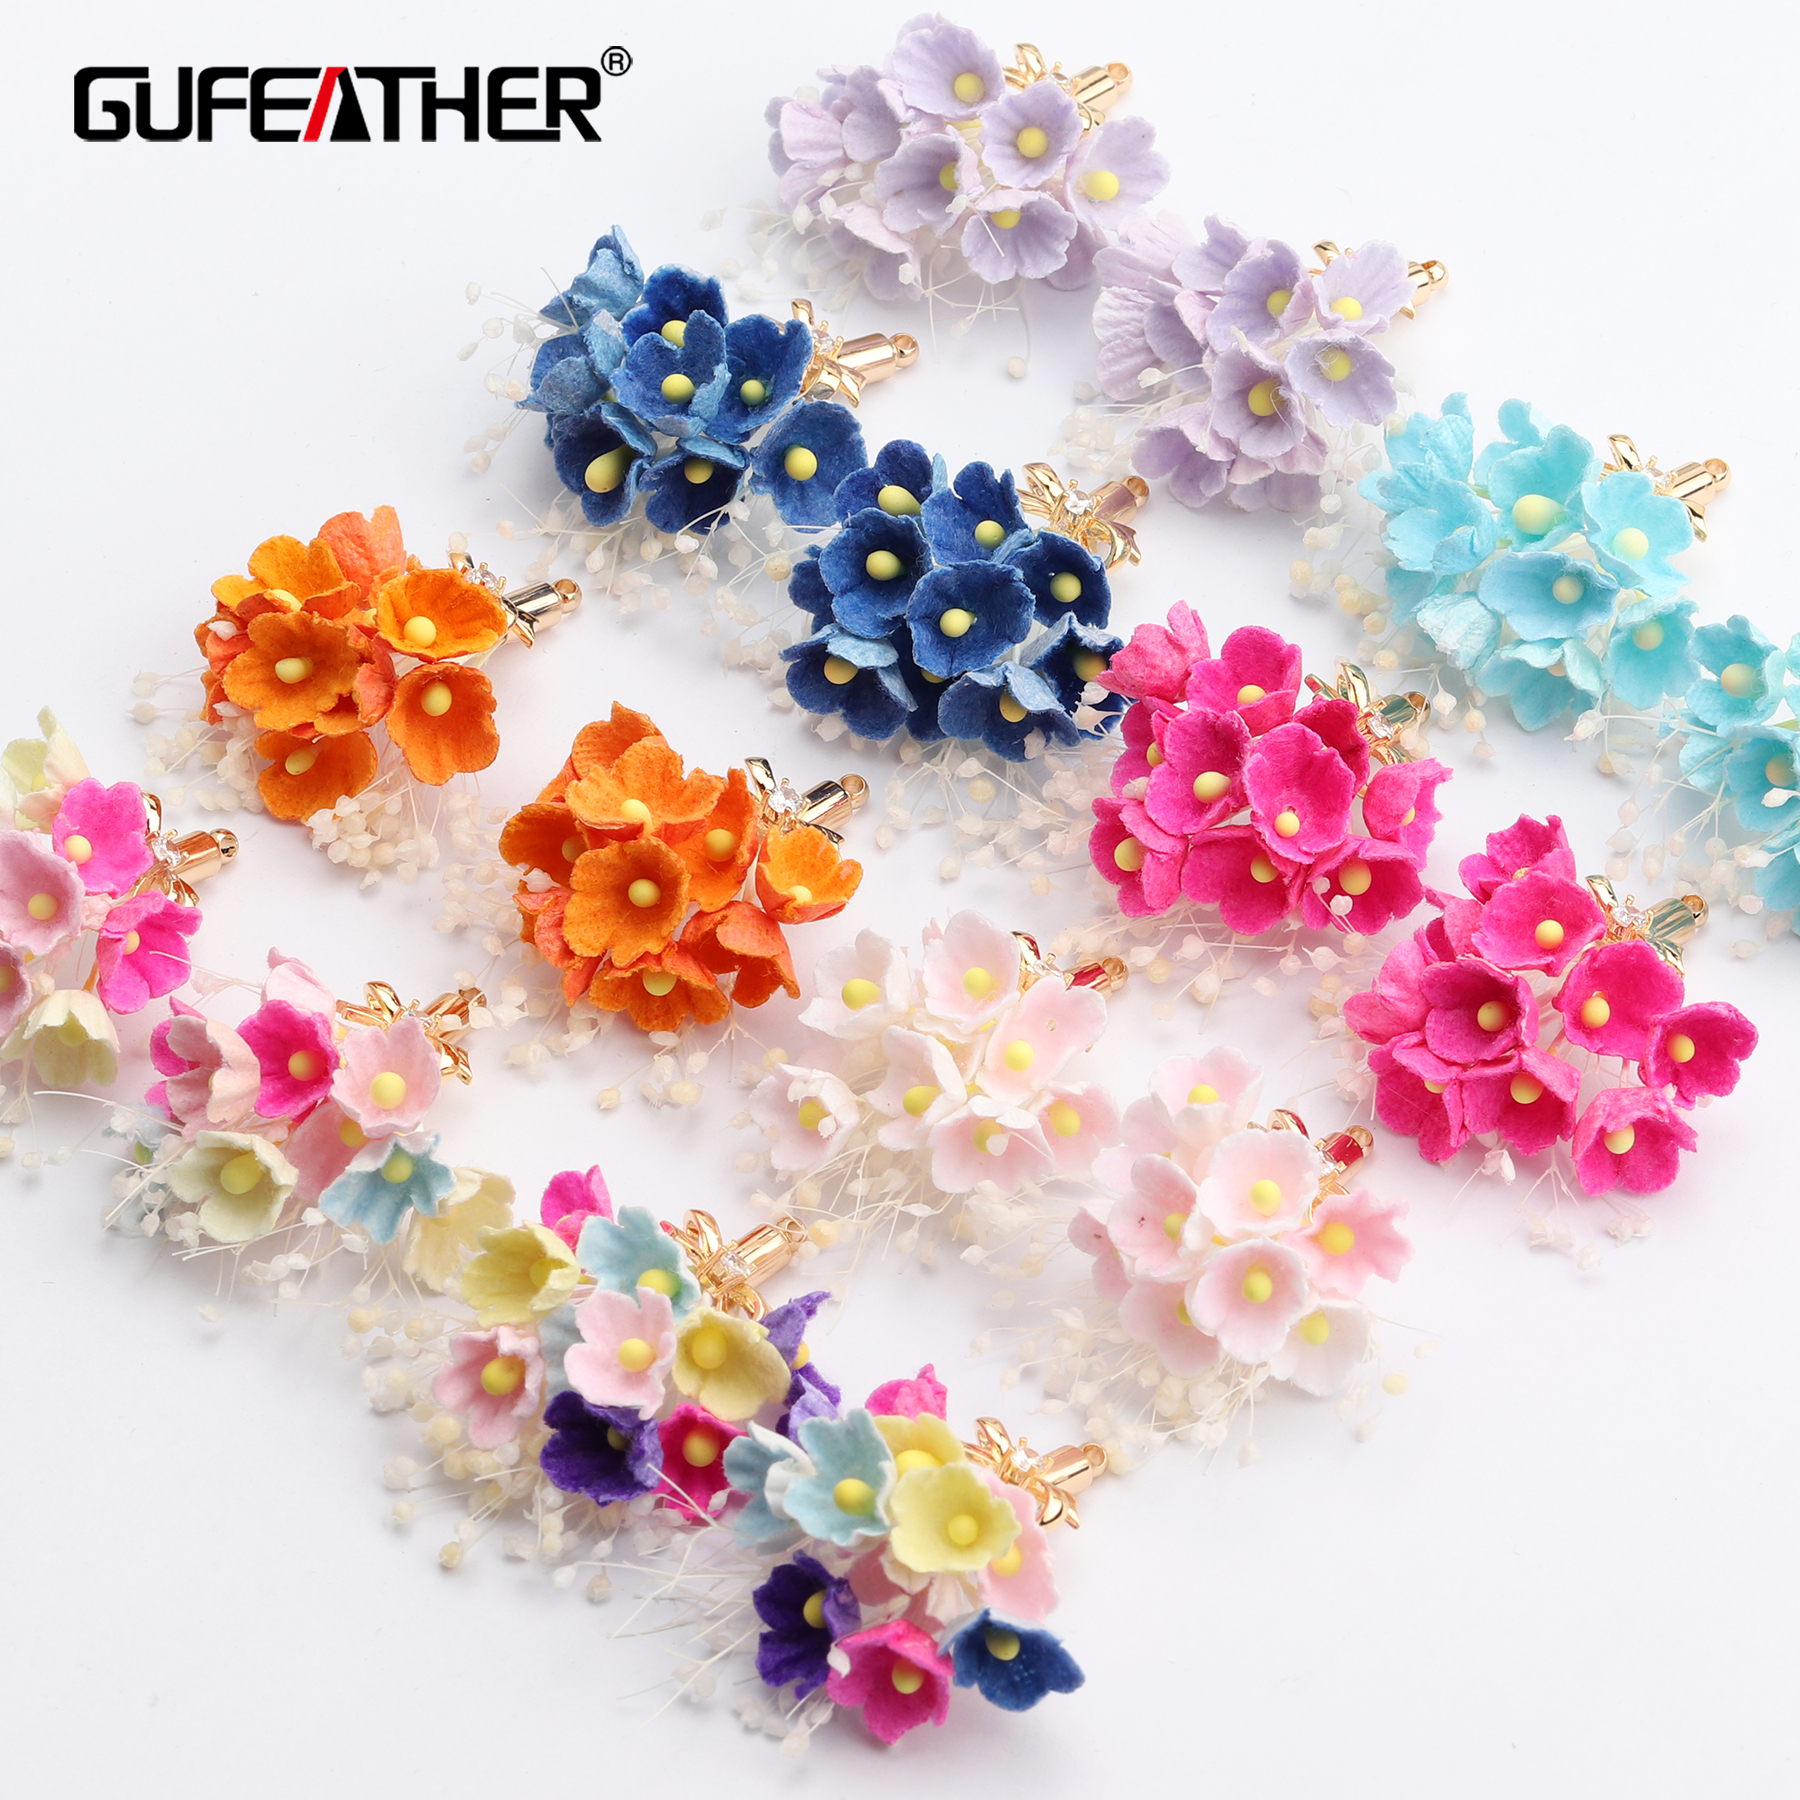 GUFEATHER M645,jewelry Accessories,18k Gold Plated,diy Flower Zircon Pendants,hand Made,jewelry Making,diy Earrings,6pcs/lot